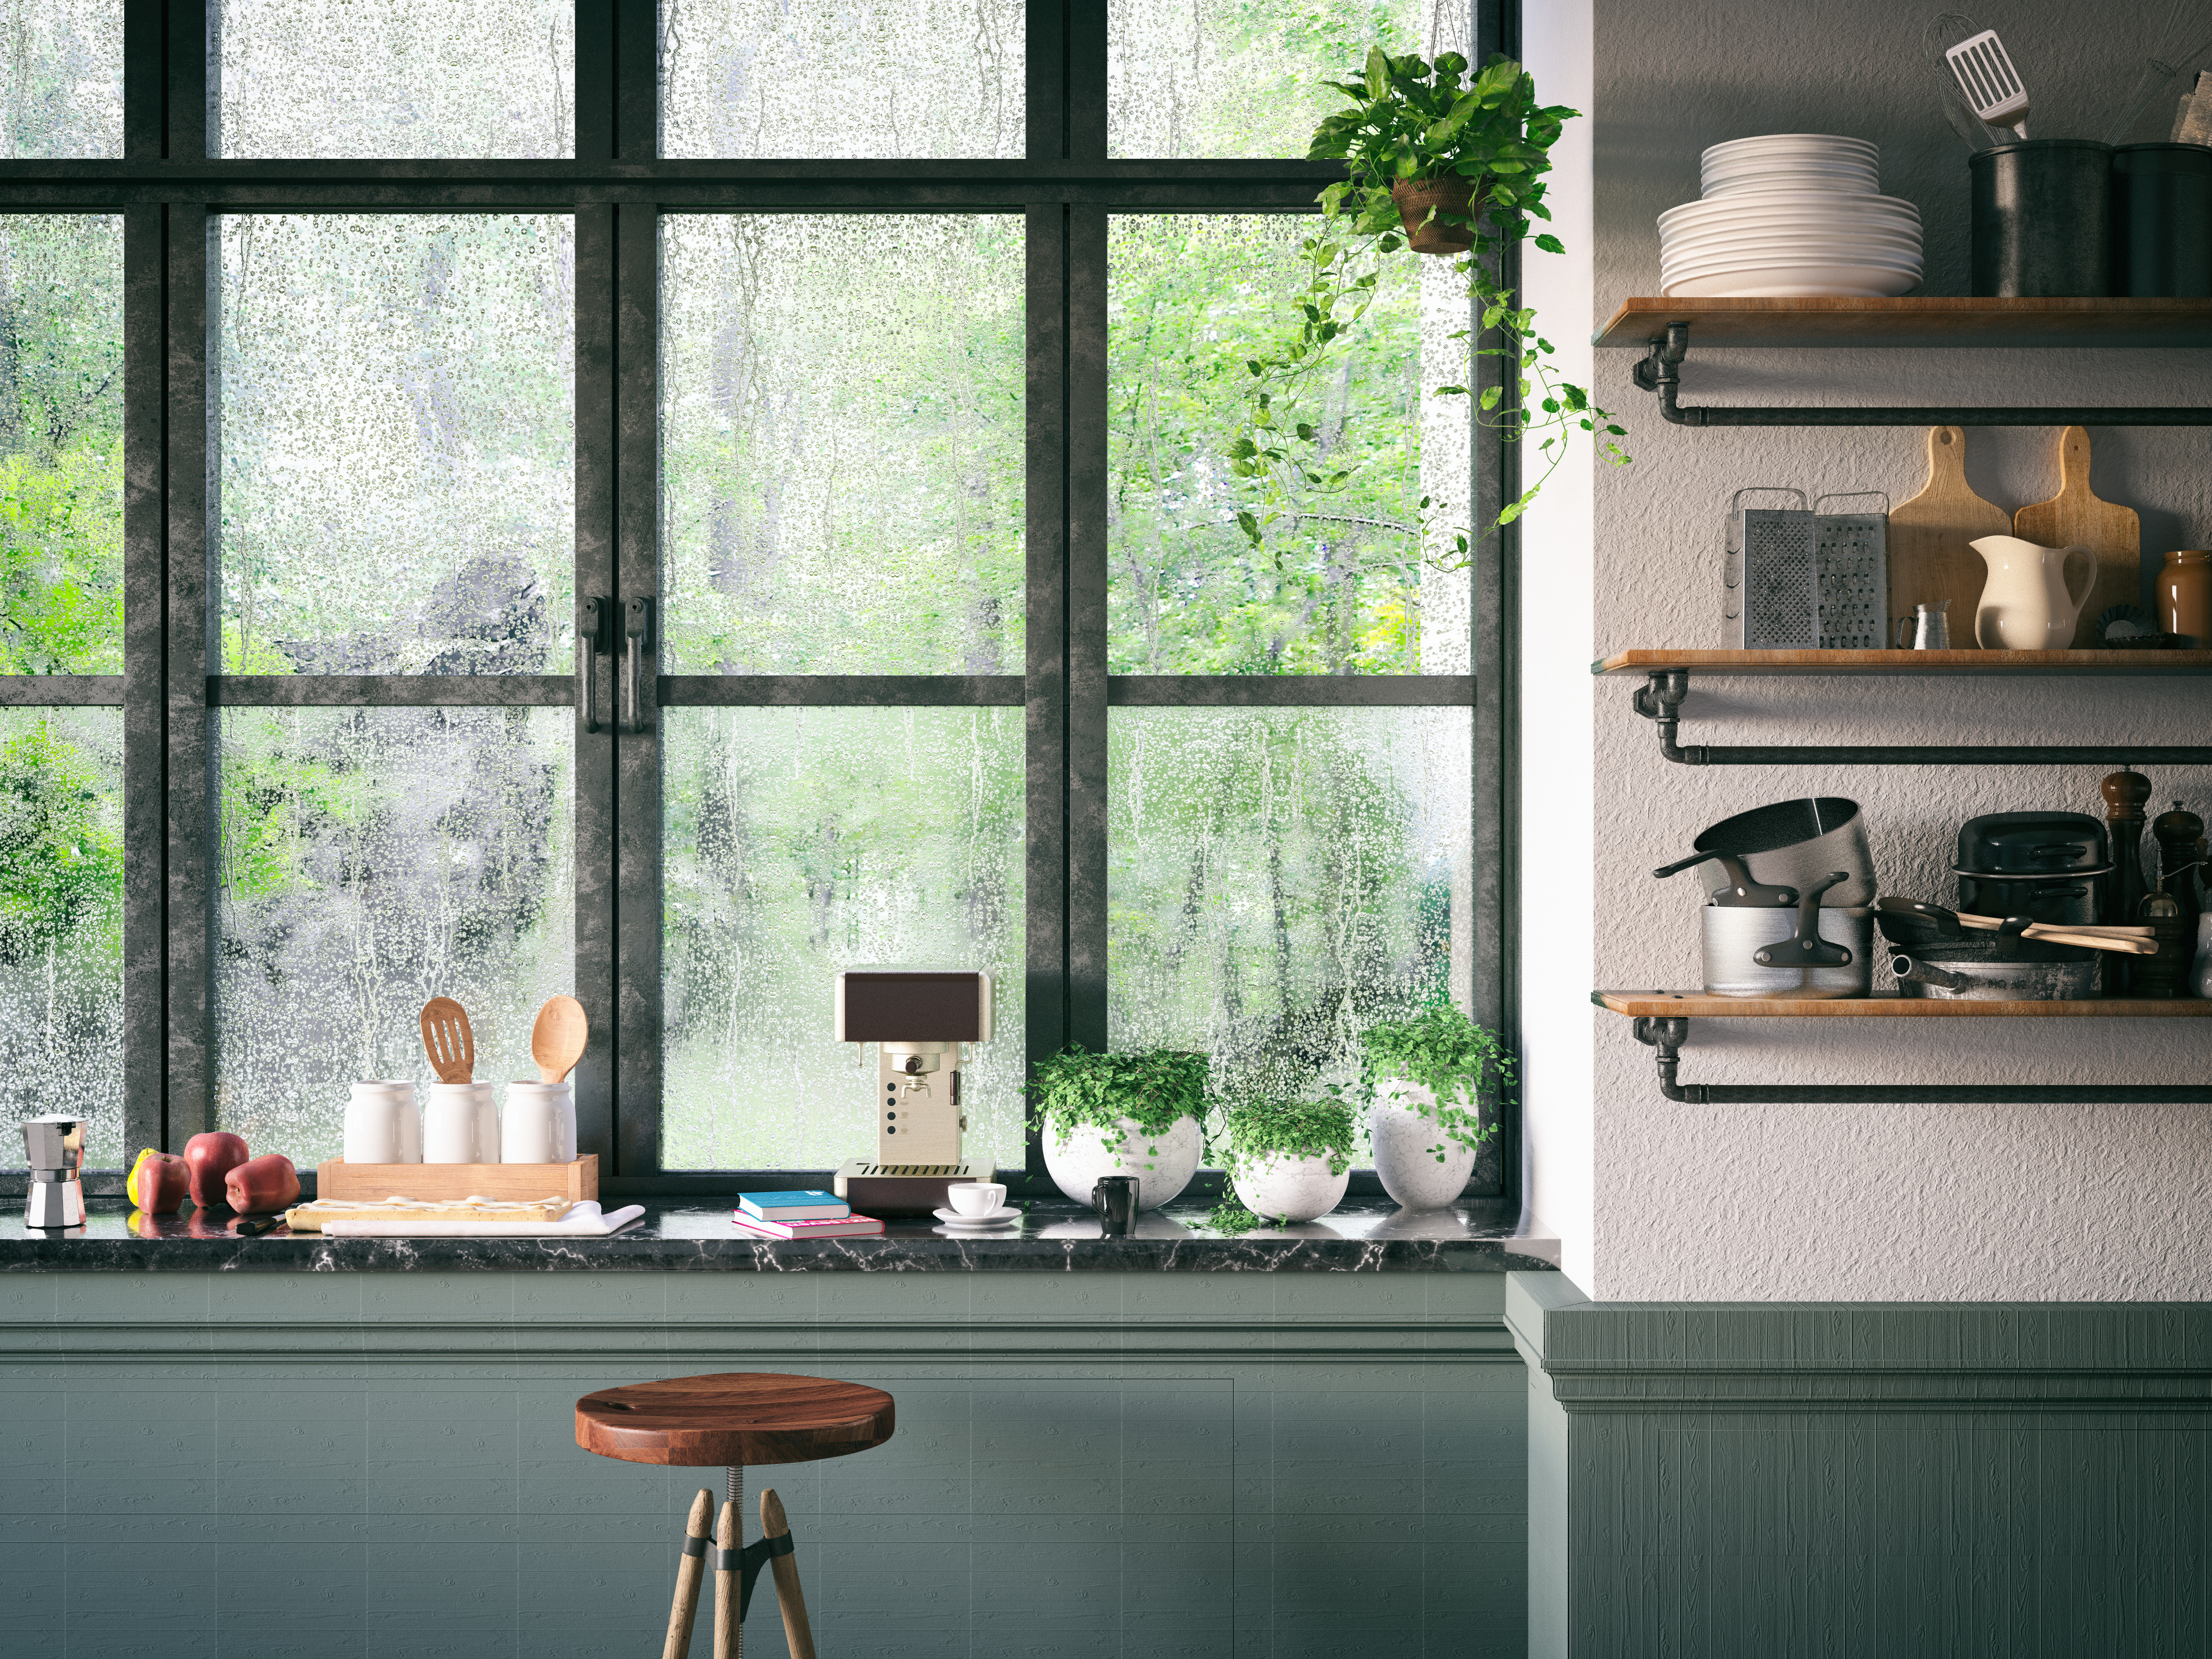 modern kitchen with plants